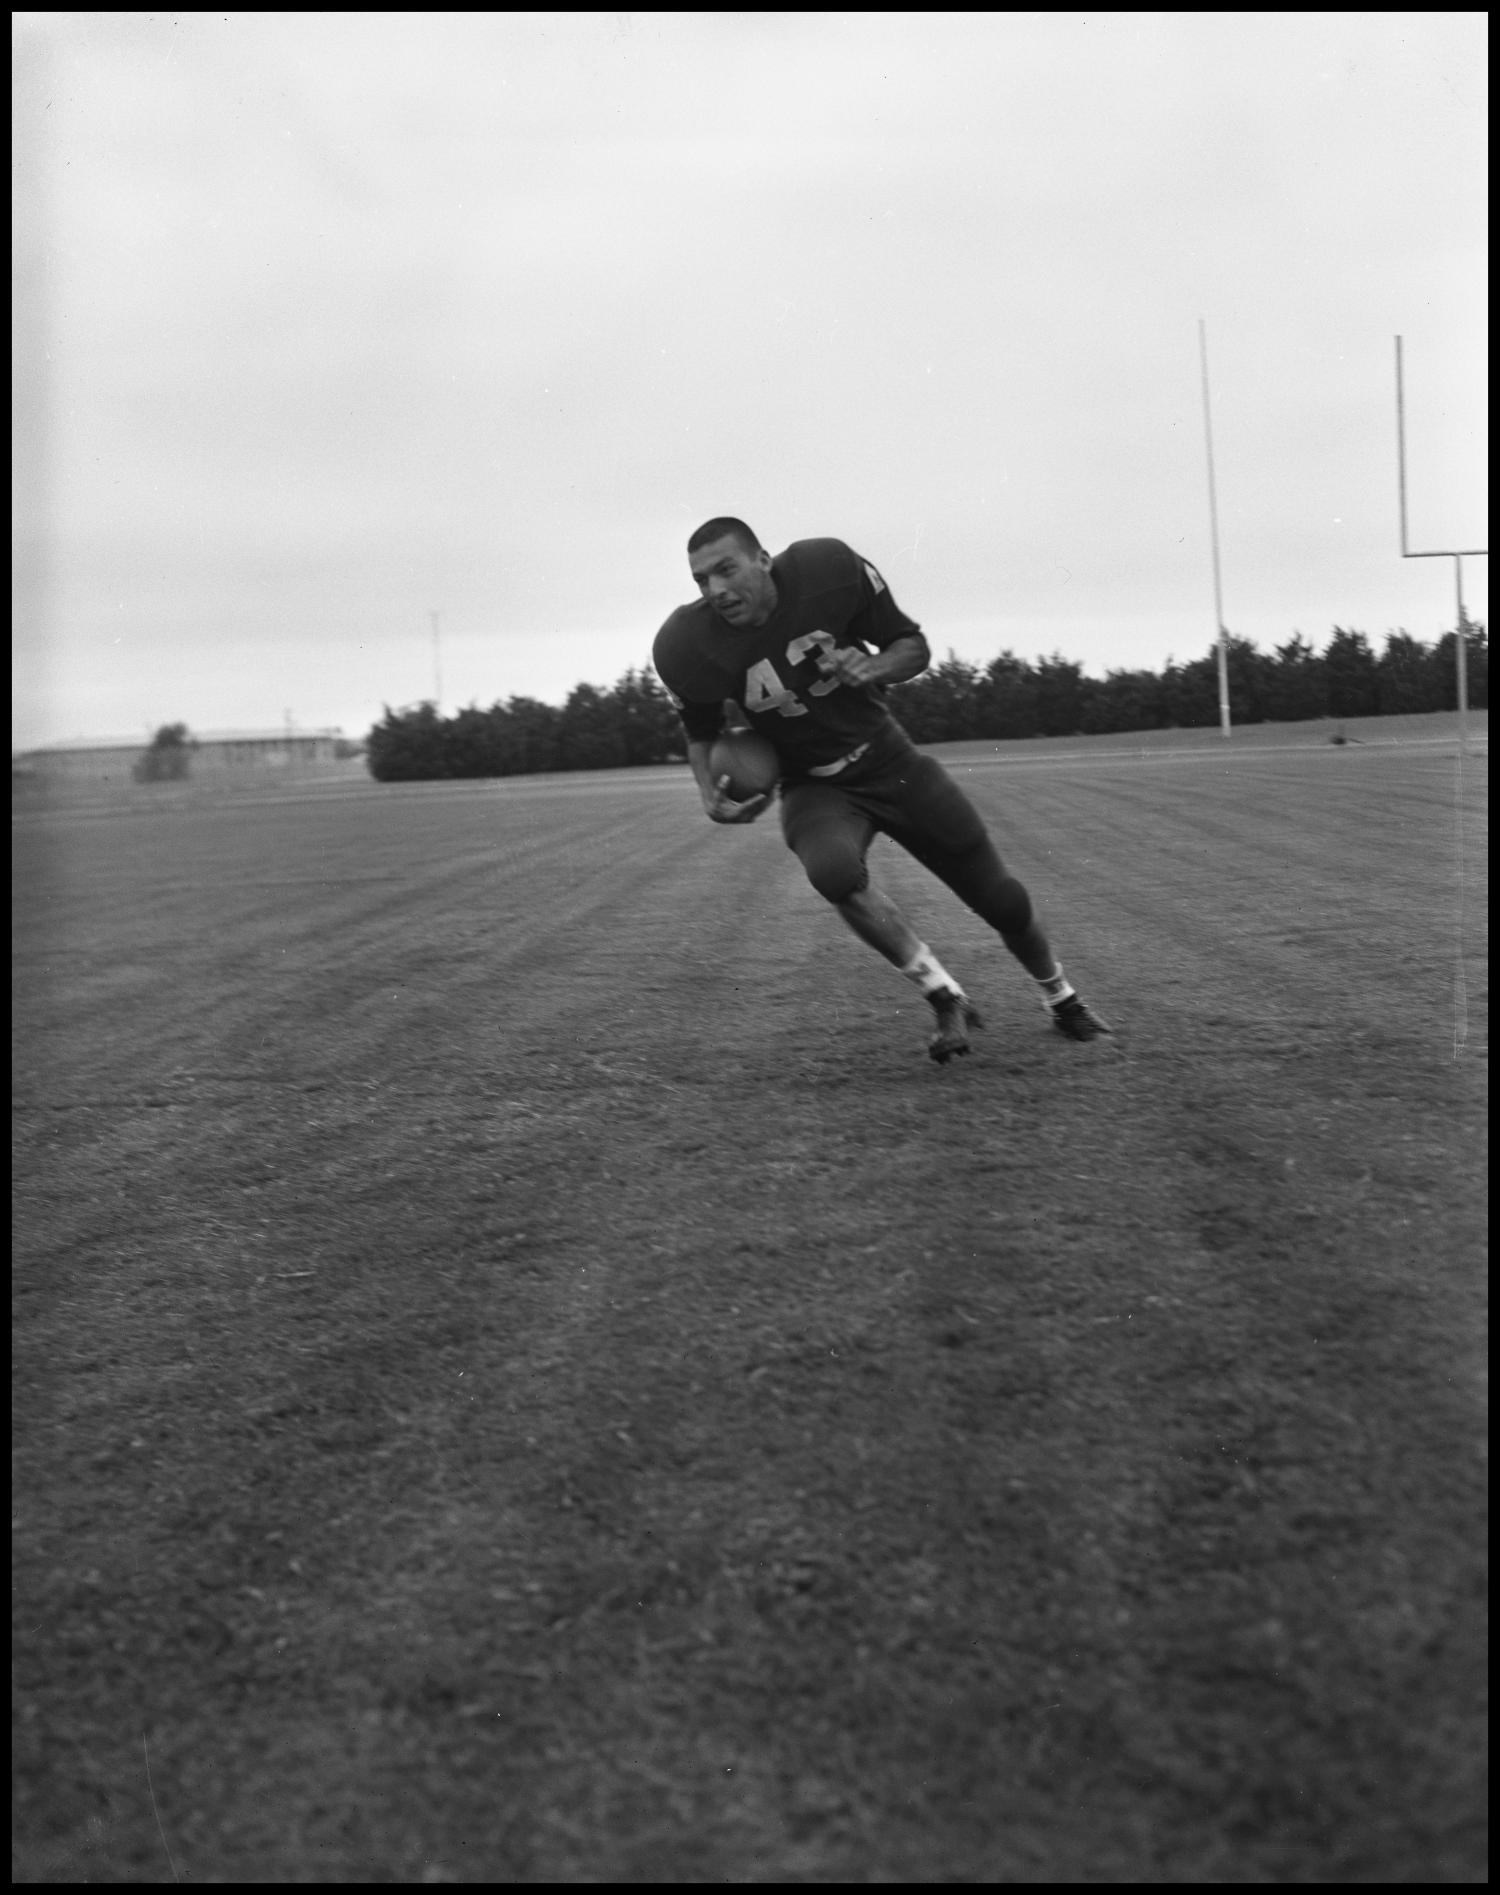 [Football Player No. 43 Running with a Football, September 1962]                                                                                                      [Sequence #]: 1 of 1